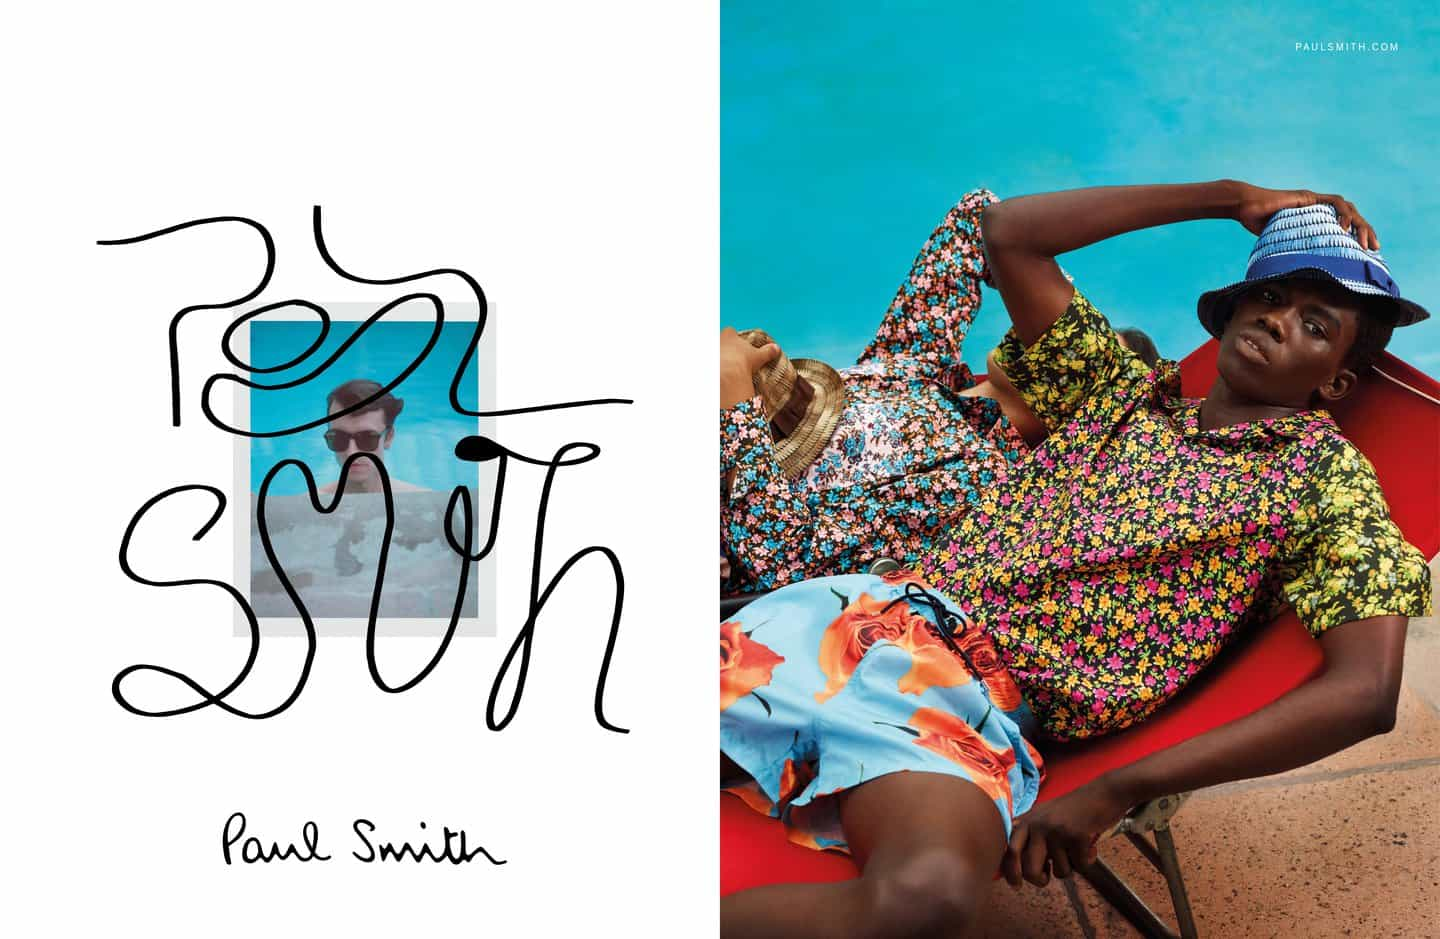 Wei Prior: Paul Smith SS21 (Copyright © Wei Prior / Paul Smith 2021)